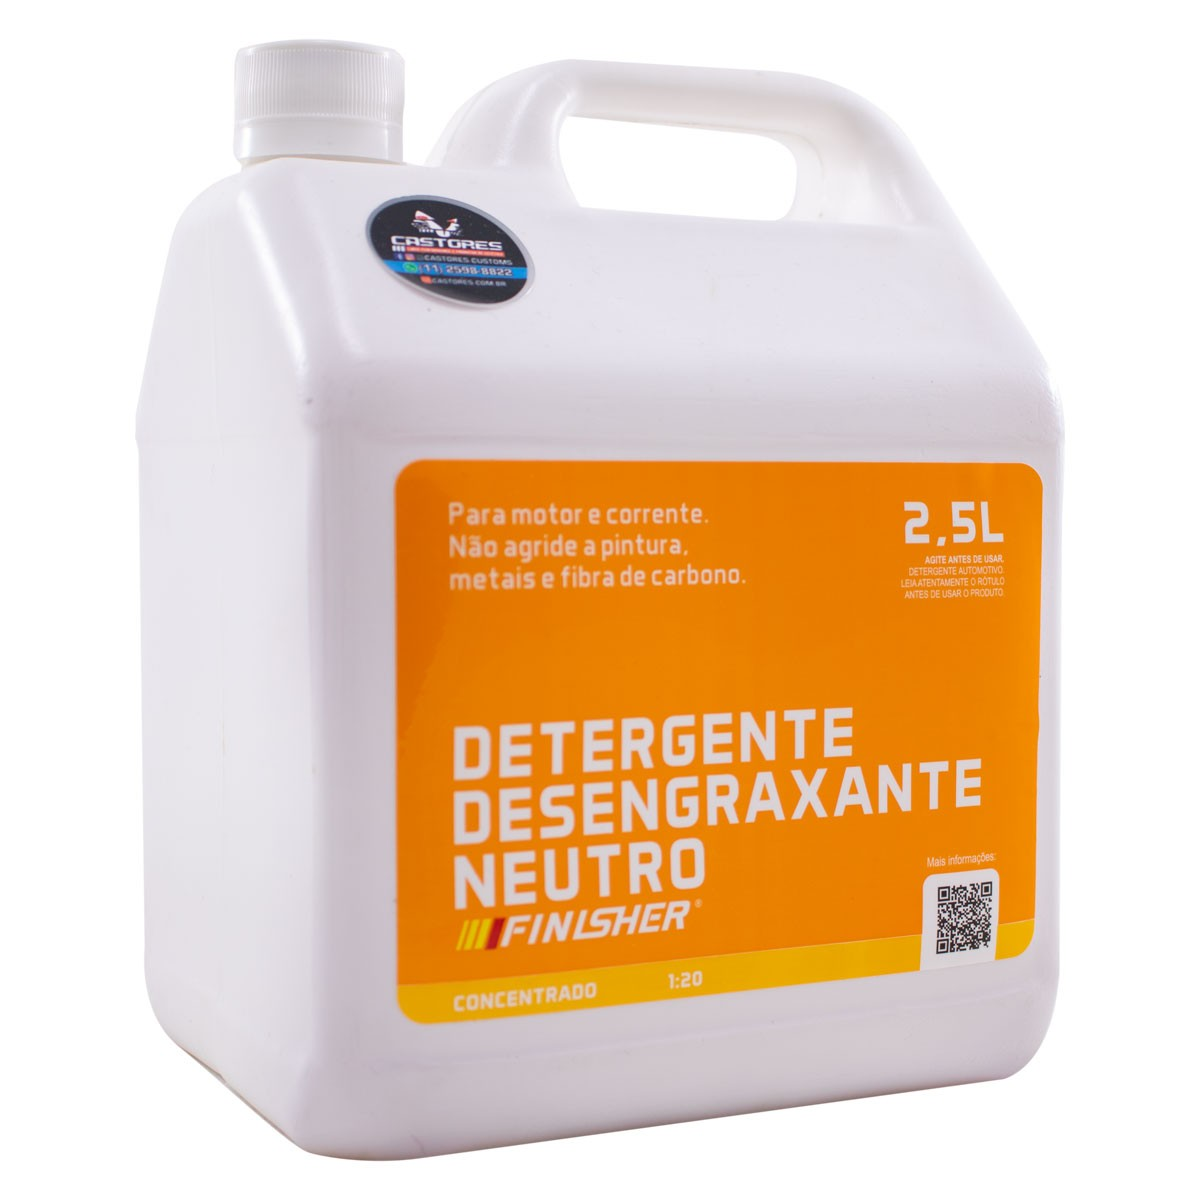 Finisher Detergente Desengraxante Neutro 2,5L